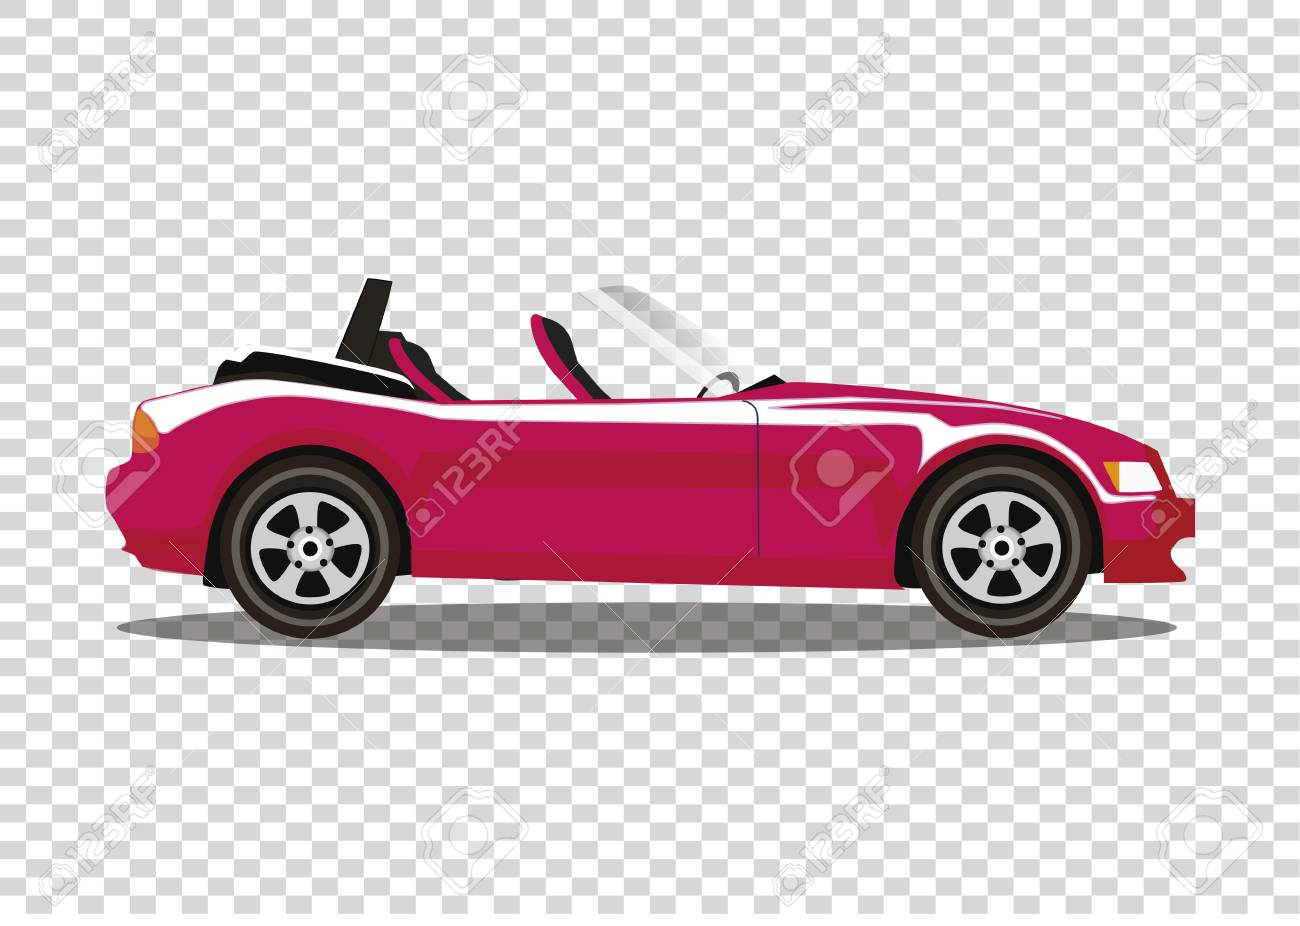 Red Modern Cartoon Colored Cabriolet Car Isolated On Transparent